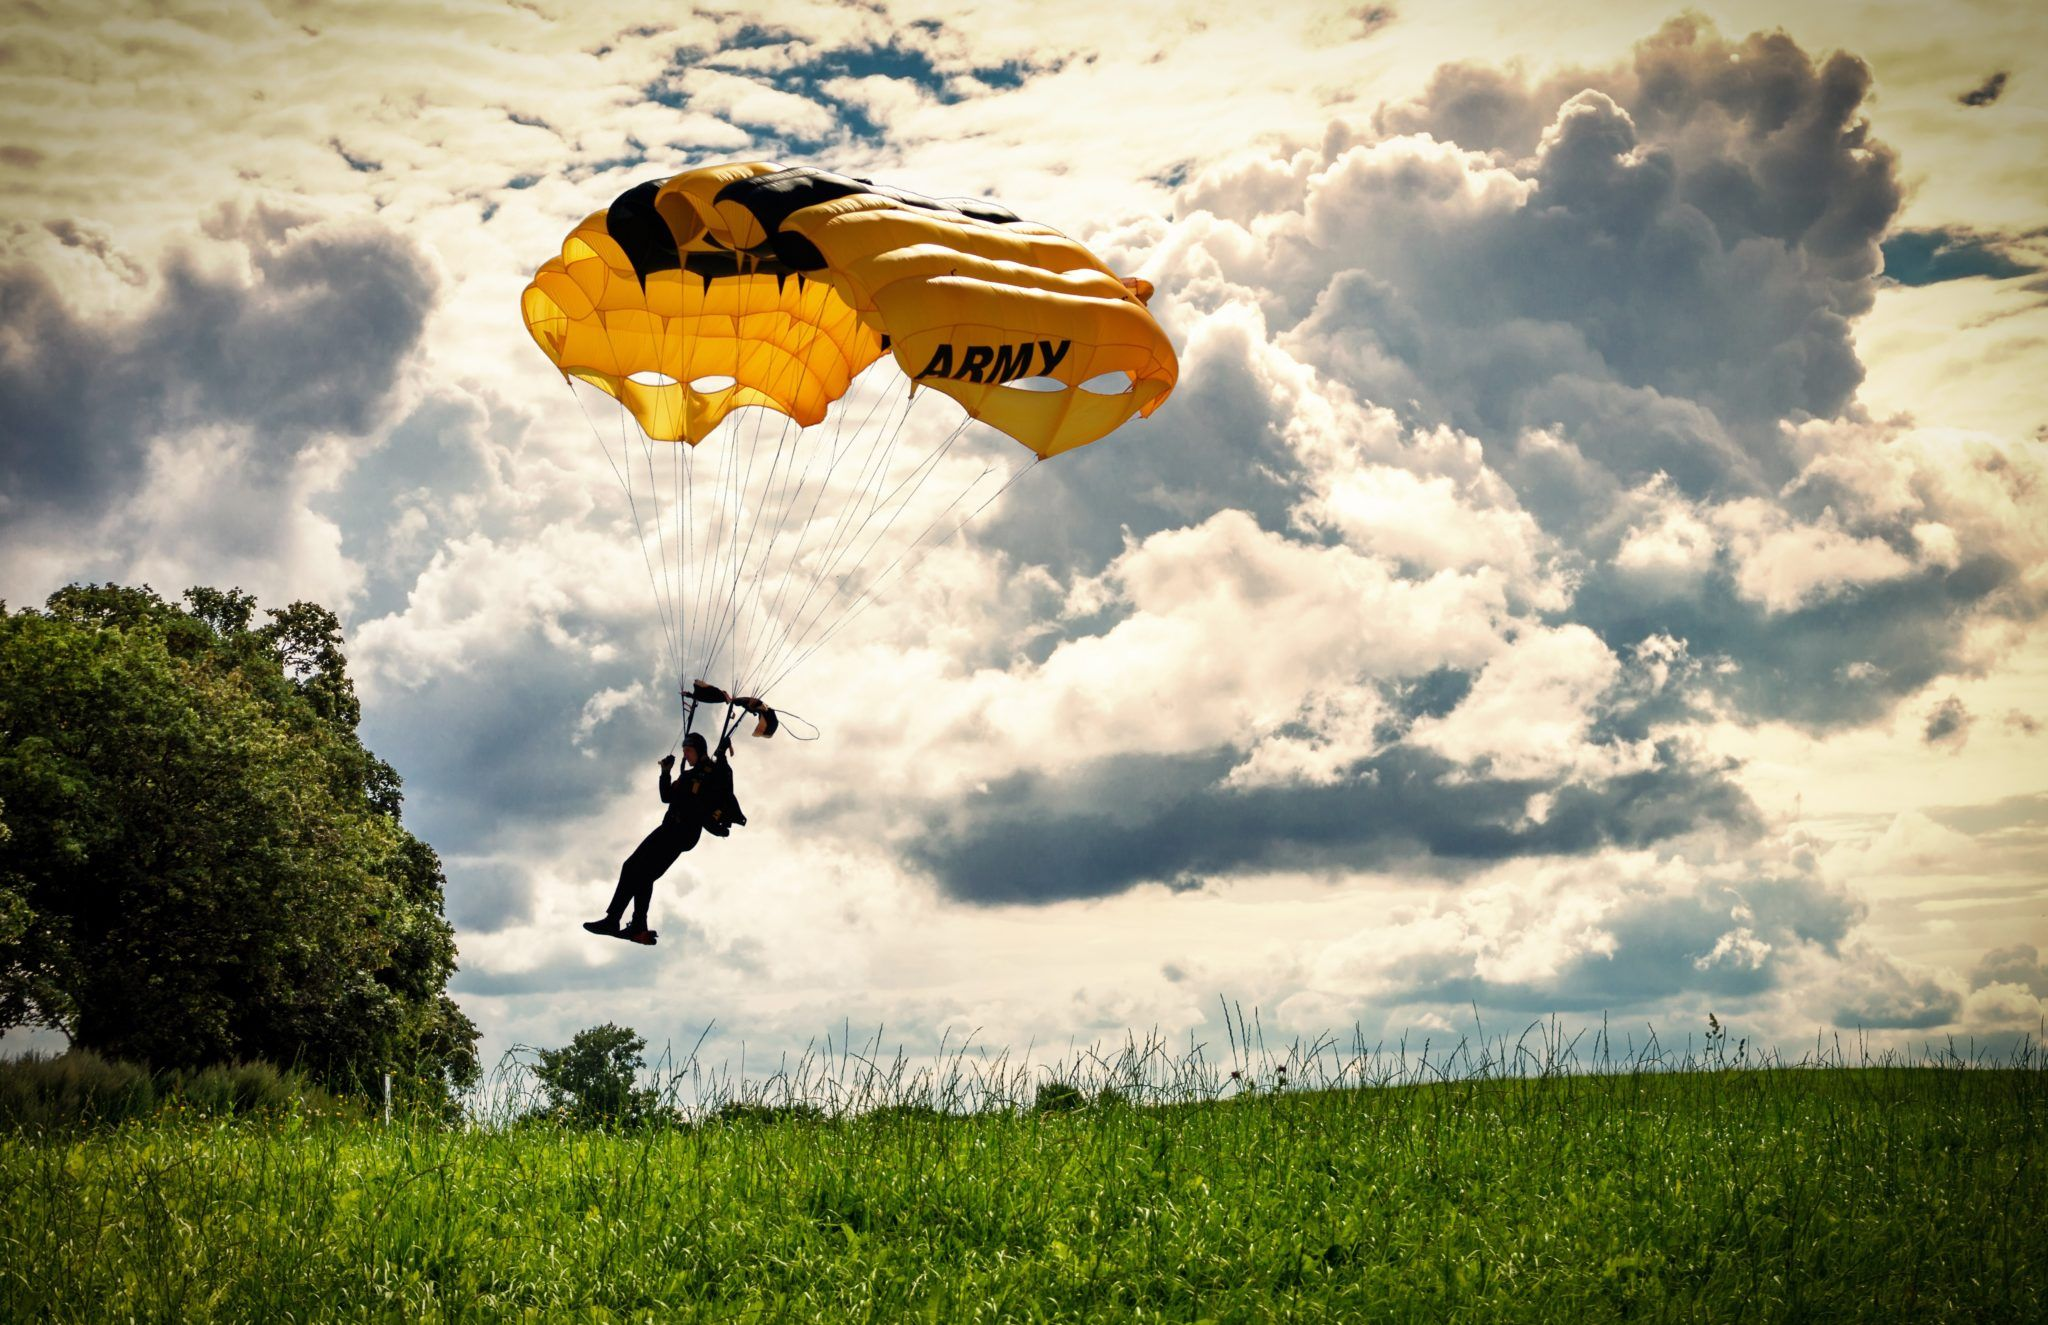 paragliding wallpapers high quality paragliding wallpapers